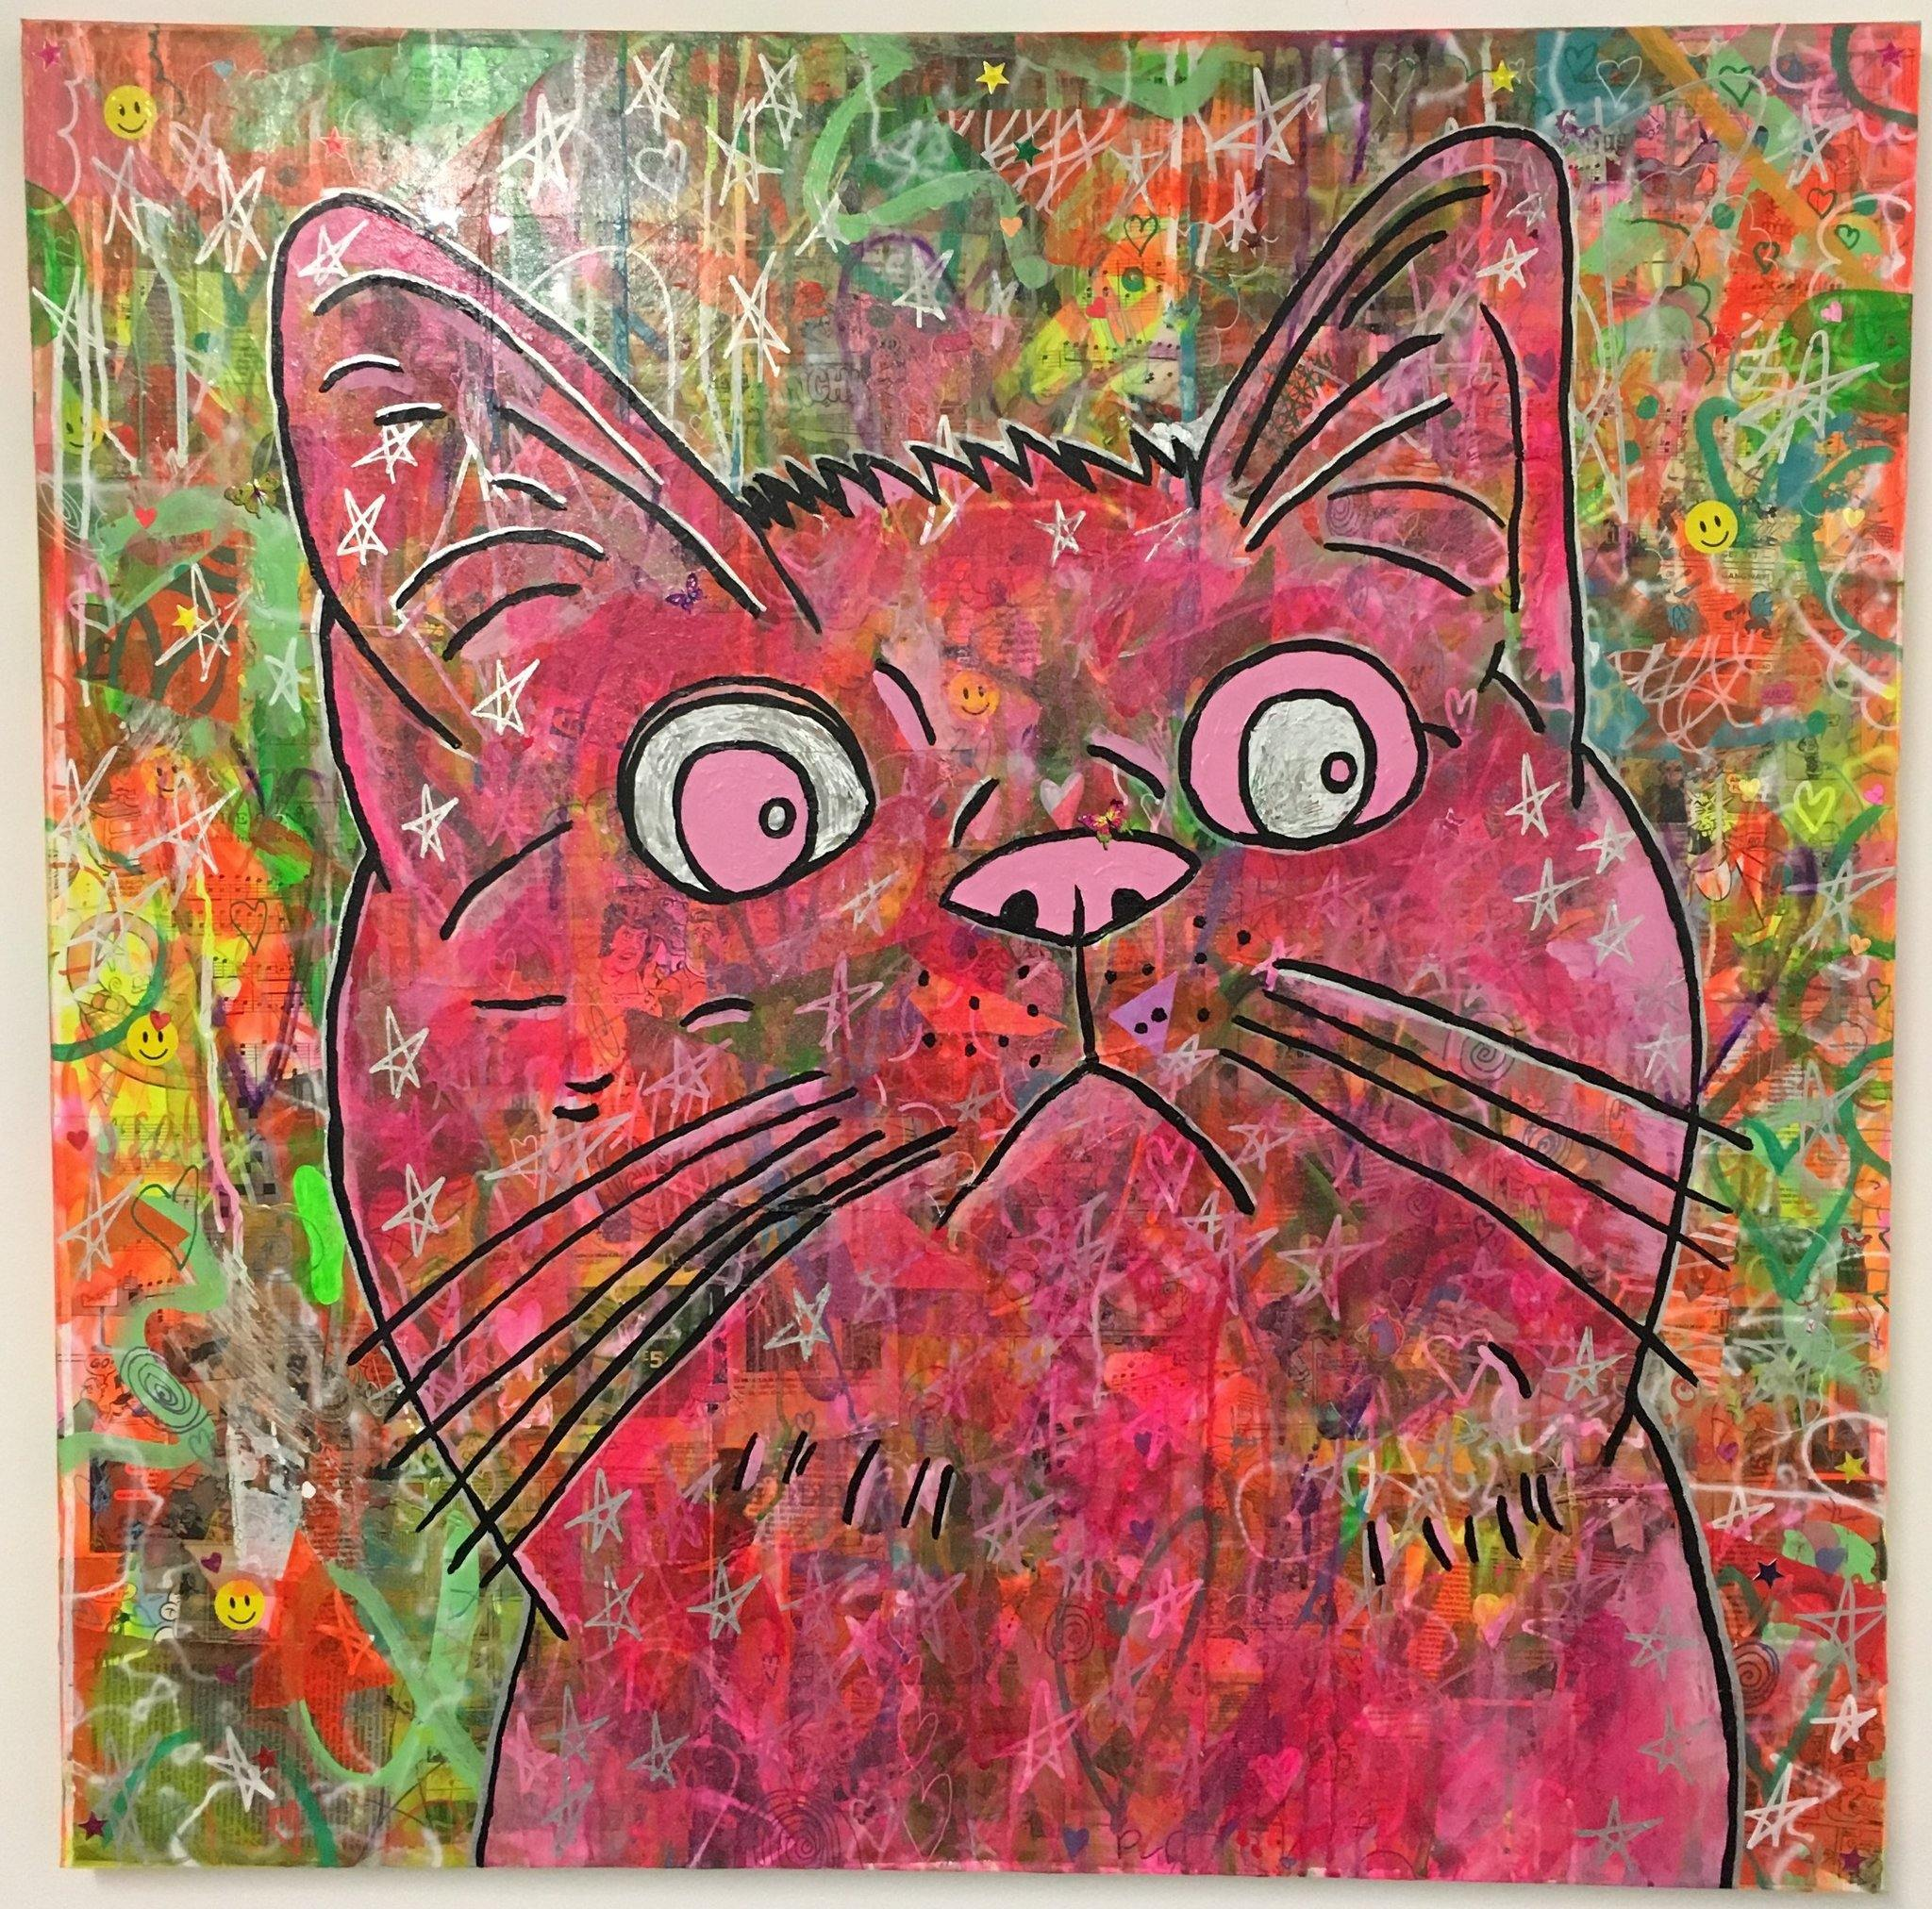 Cosmic moggy pink by Barrie J Davies 2018, Mixed media on canvas, 90cm x 90cm, Unframed. Barrie J Davies is an Artist - Pop Art and Street art inspired Artist based in Brighton England UK - Pop Art Paintings, Street Art Prints & Editions available.